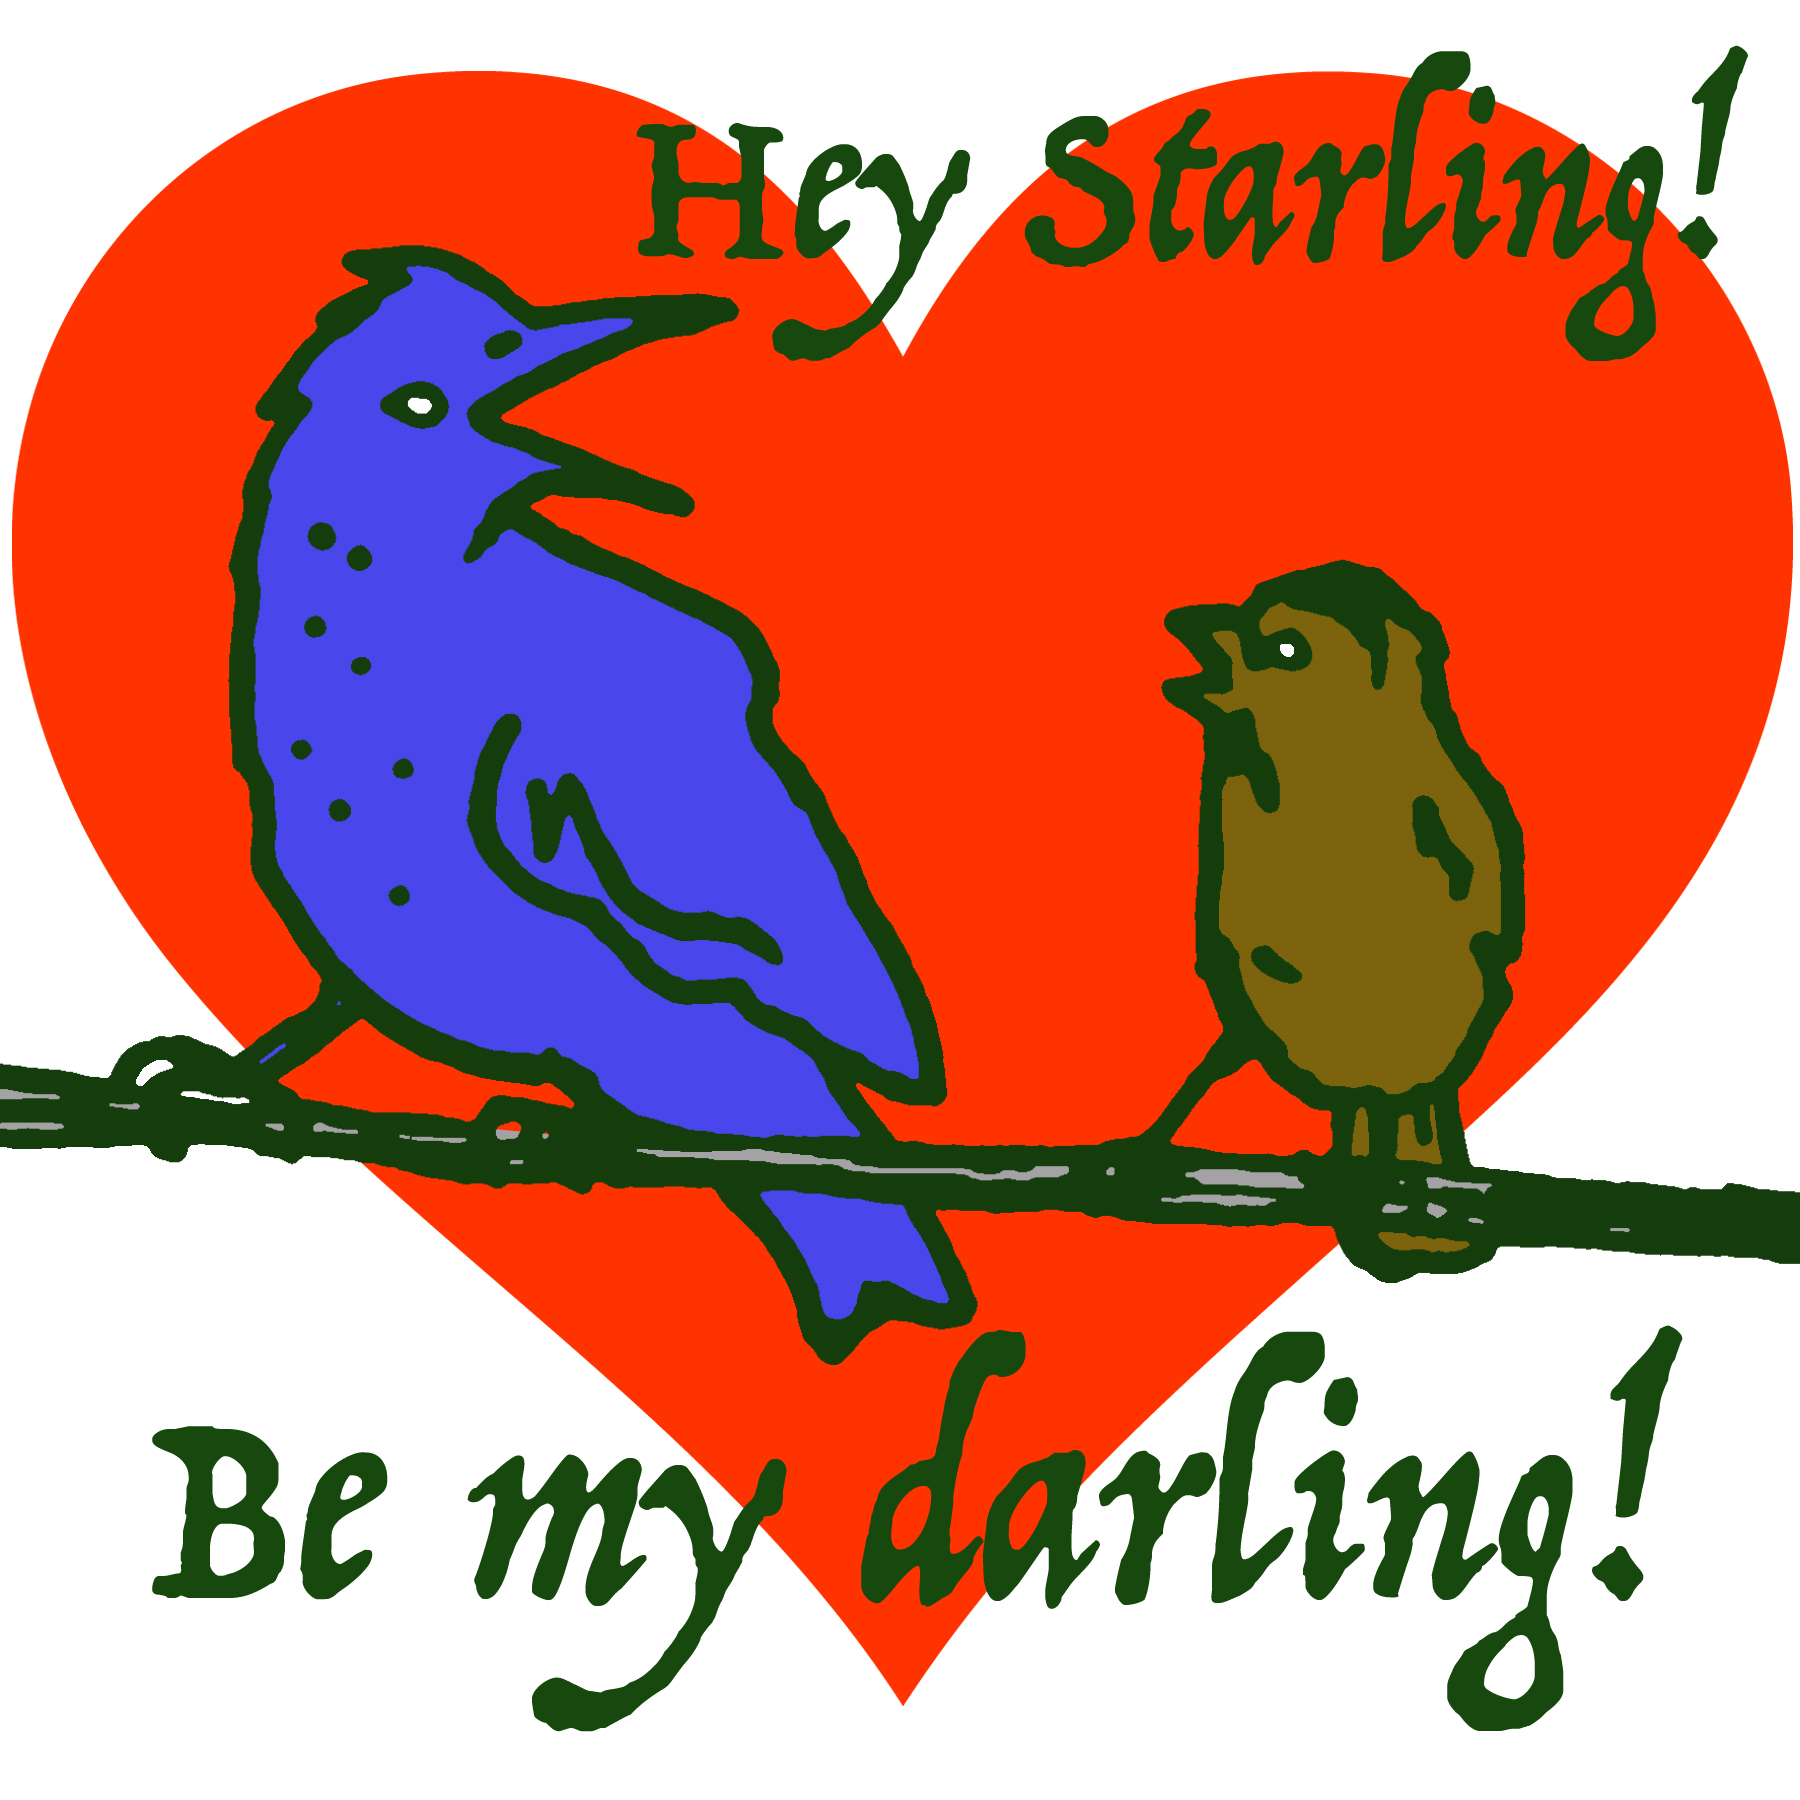 Hey Starling! Be my darling!